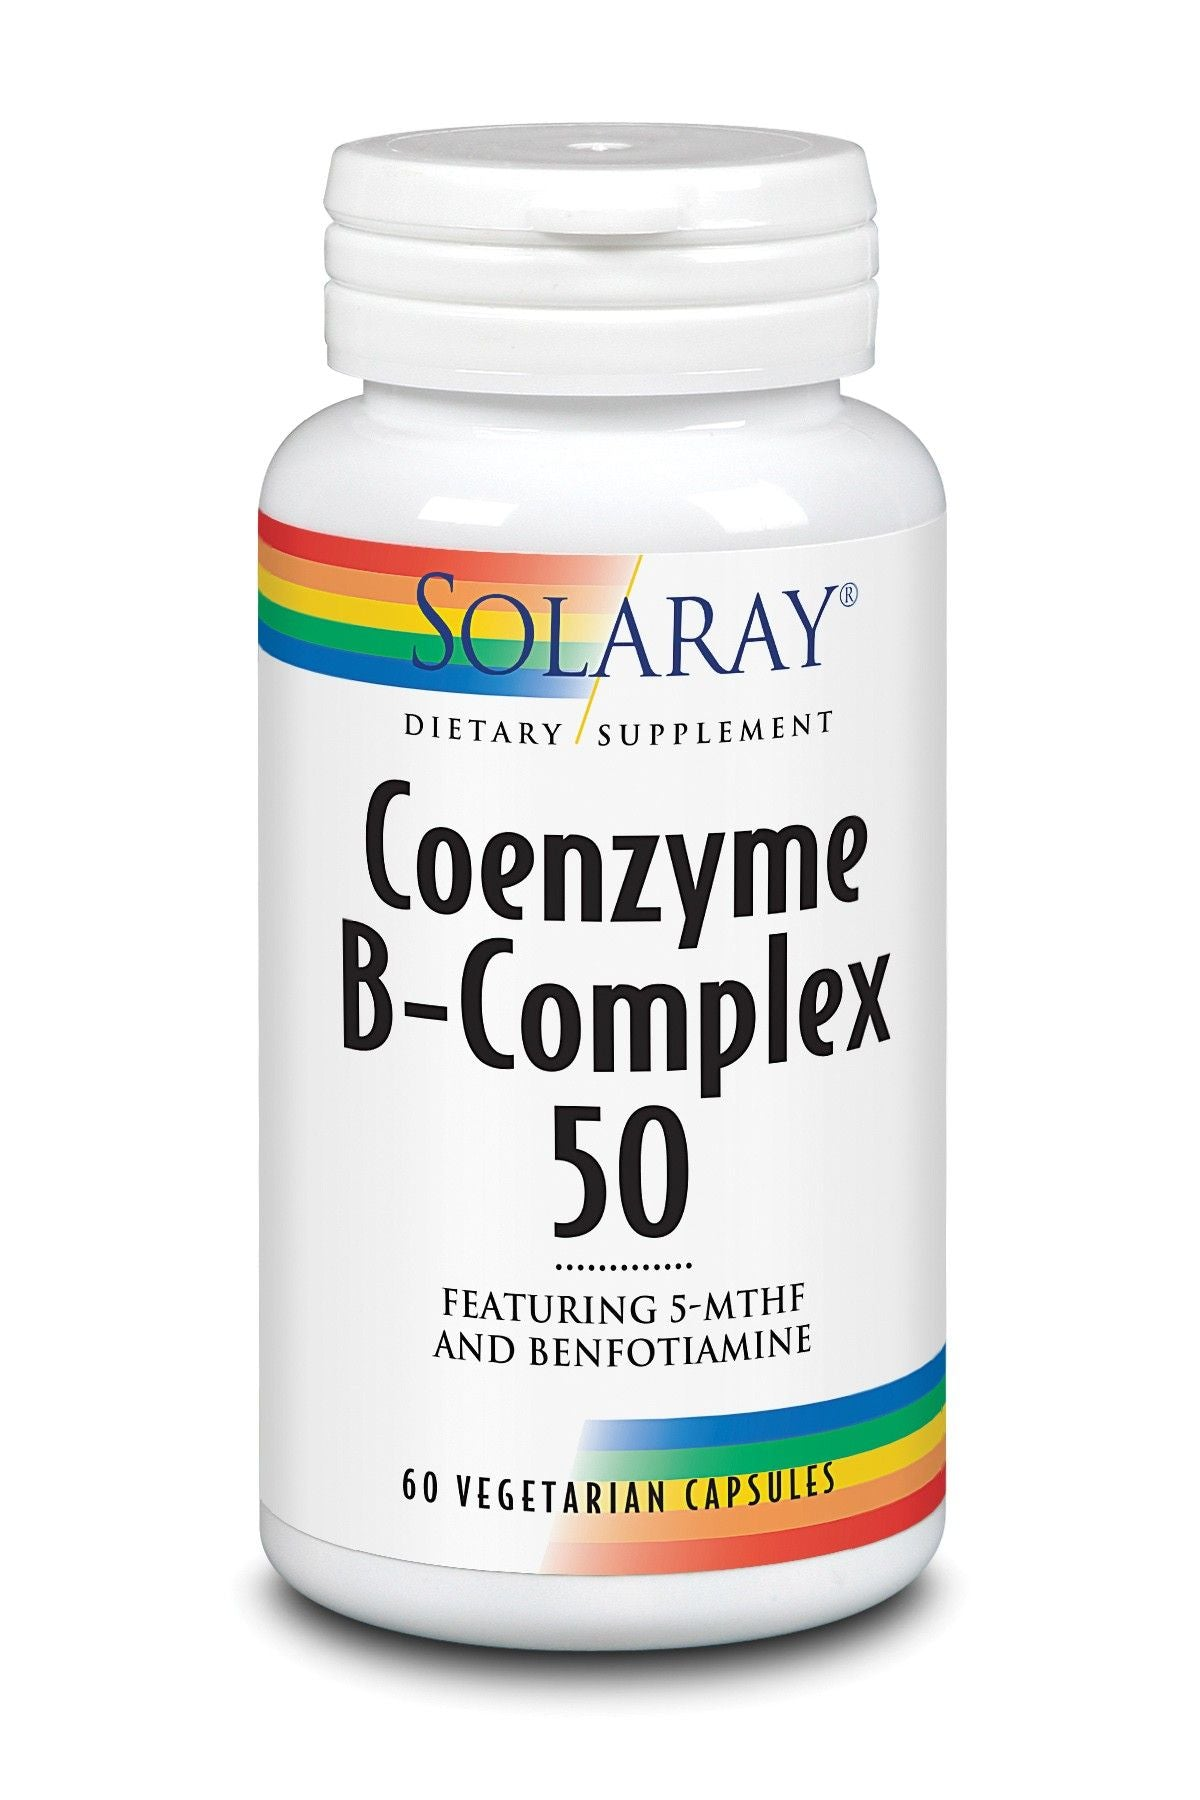 Coenzyme B-Complex 50